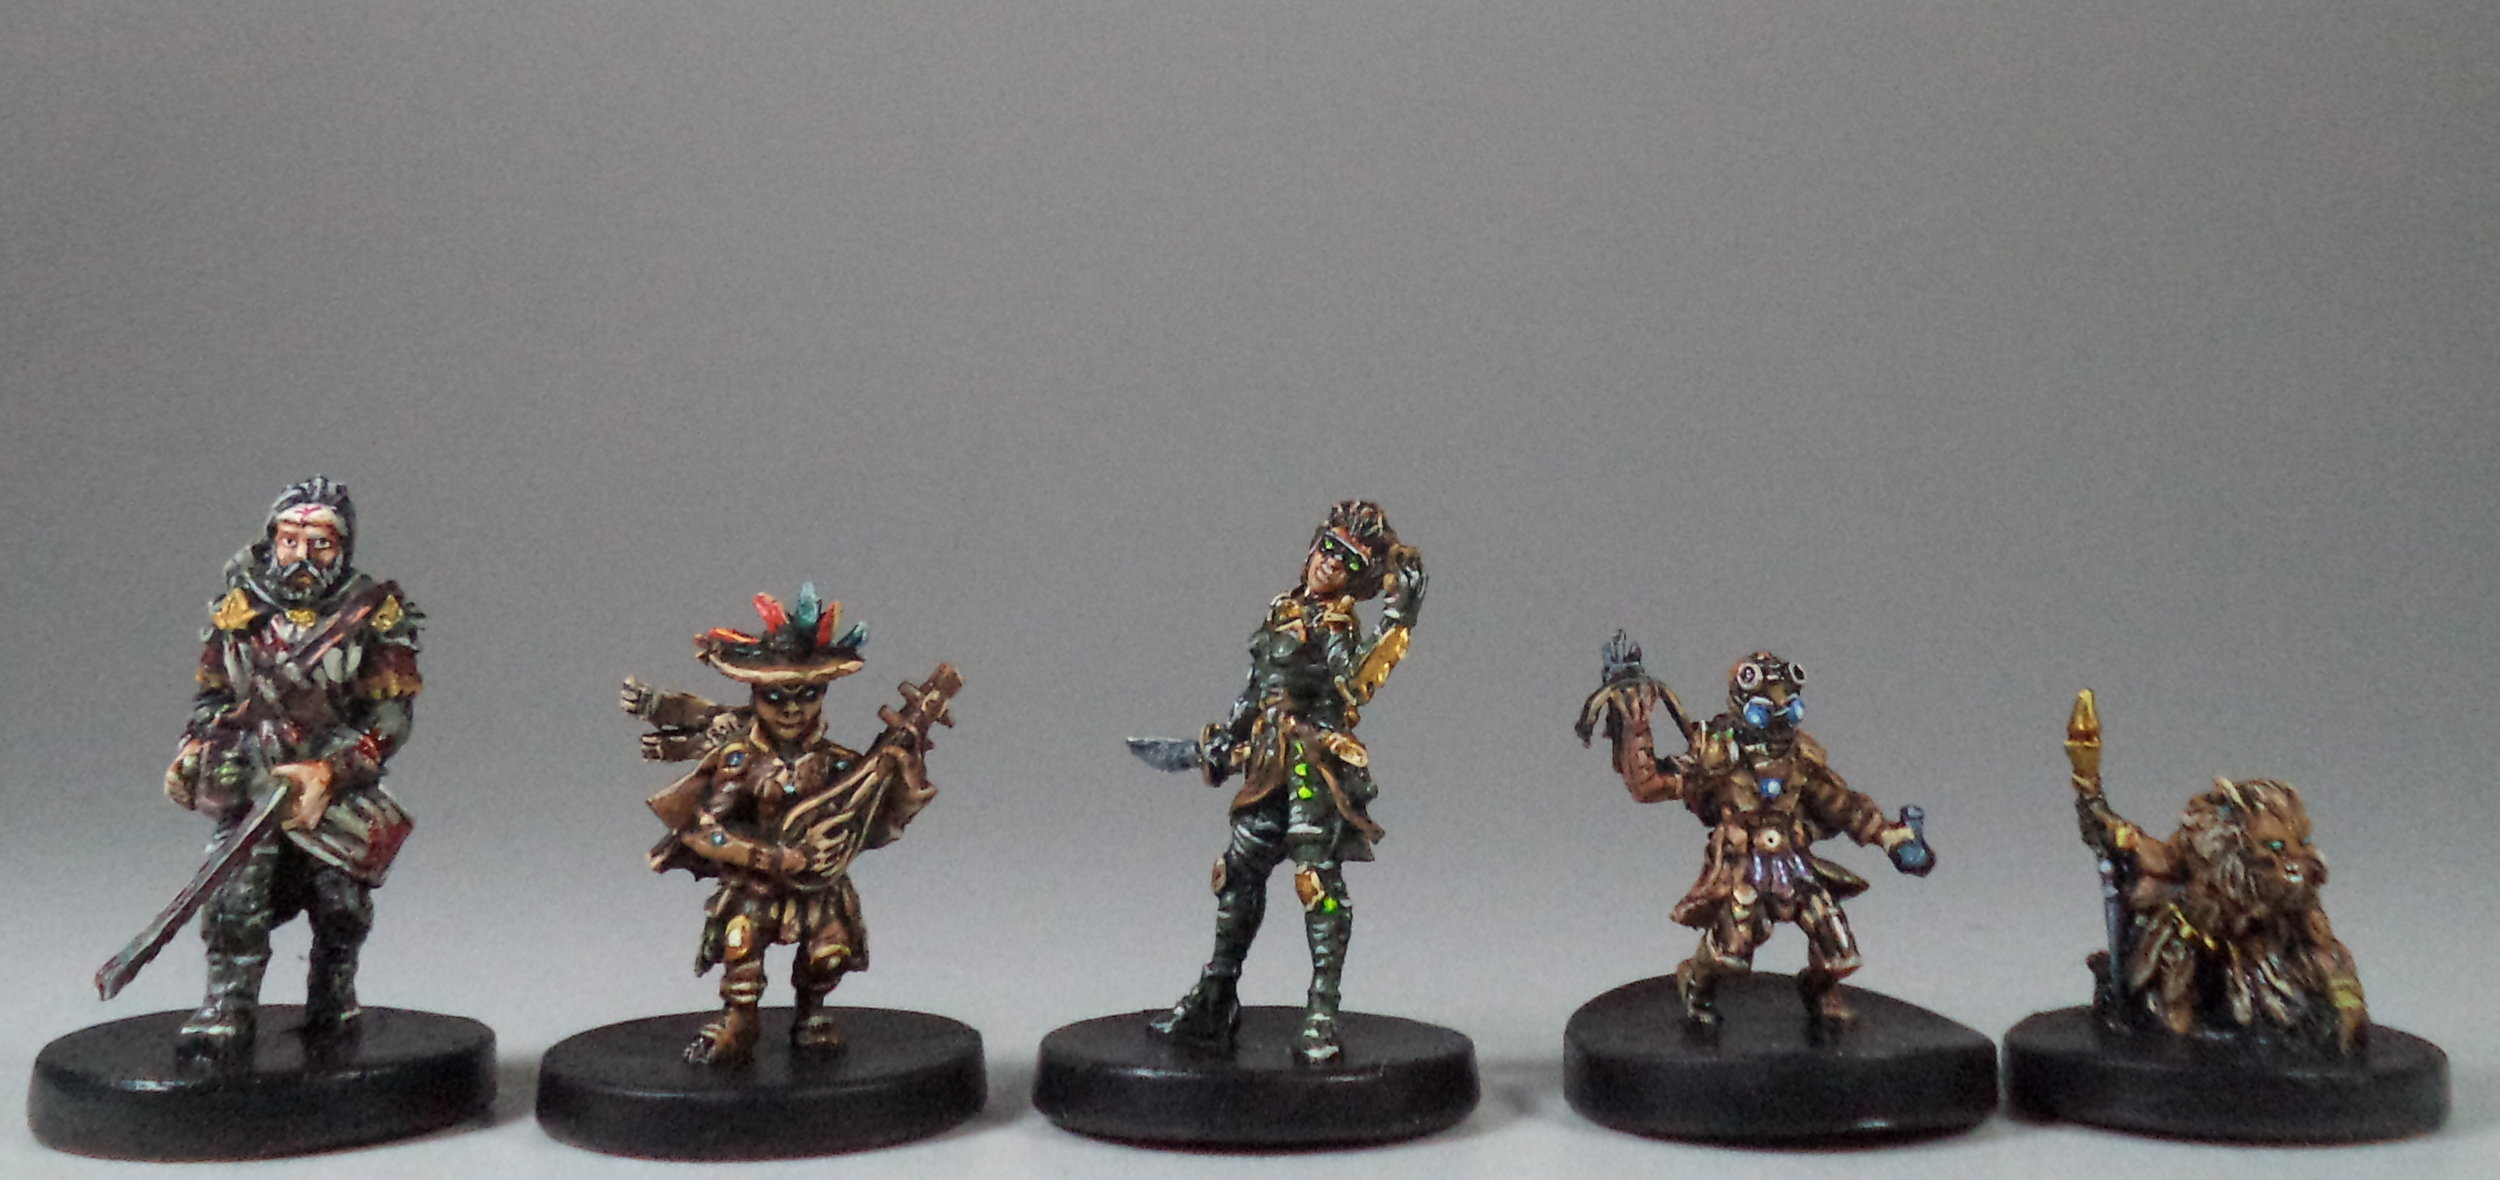 Gloomhaven Painted Gloomhaven Gloomhaven Miniature Painting (3).jpg